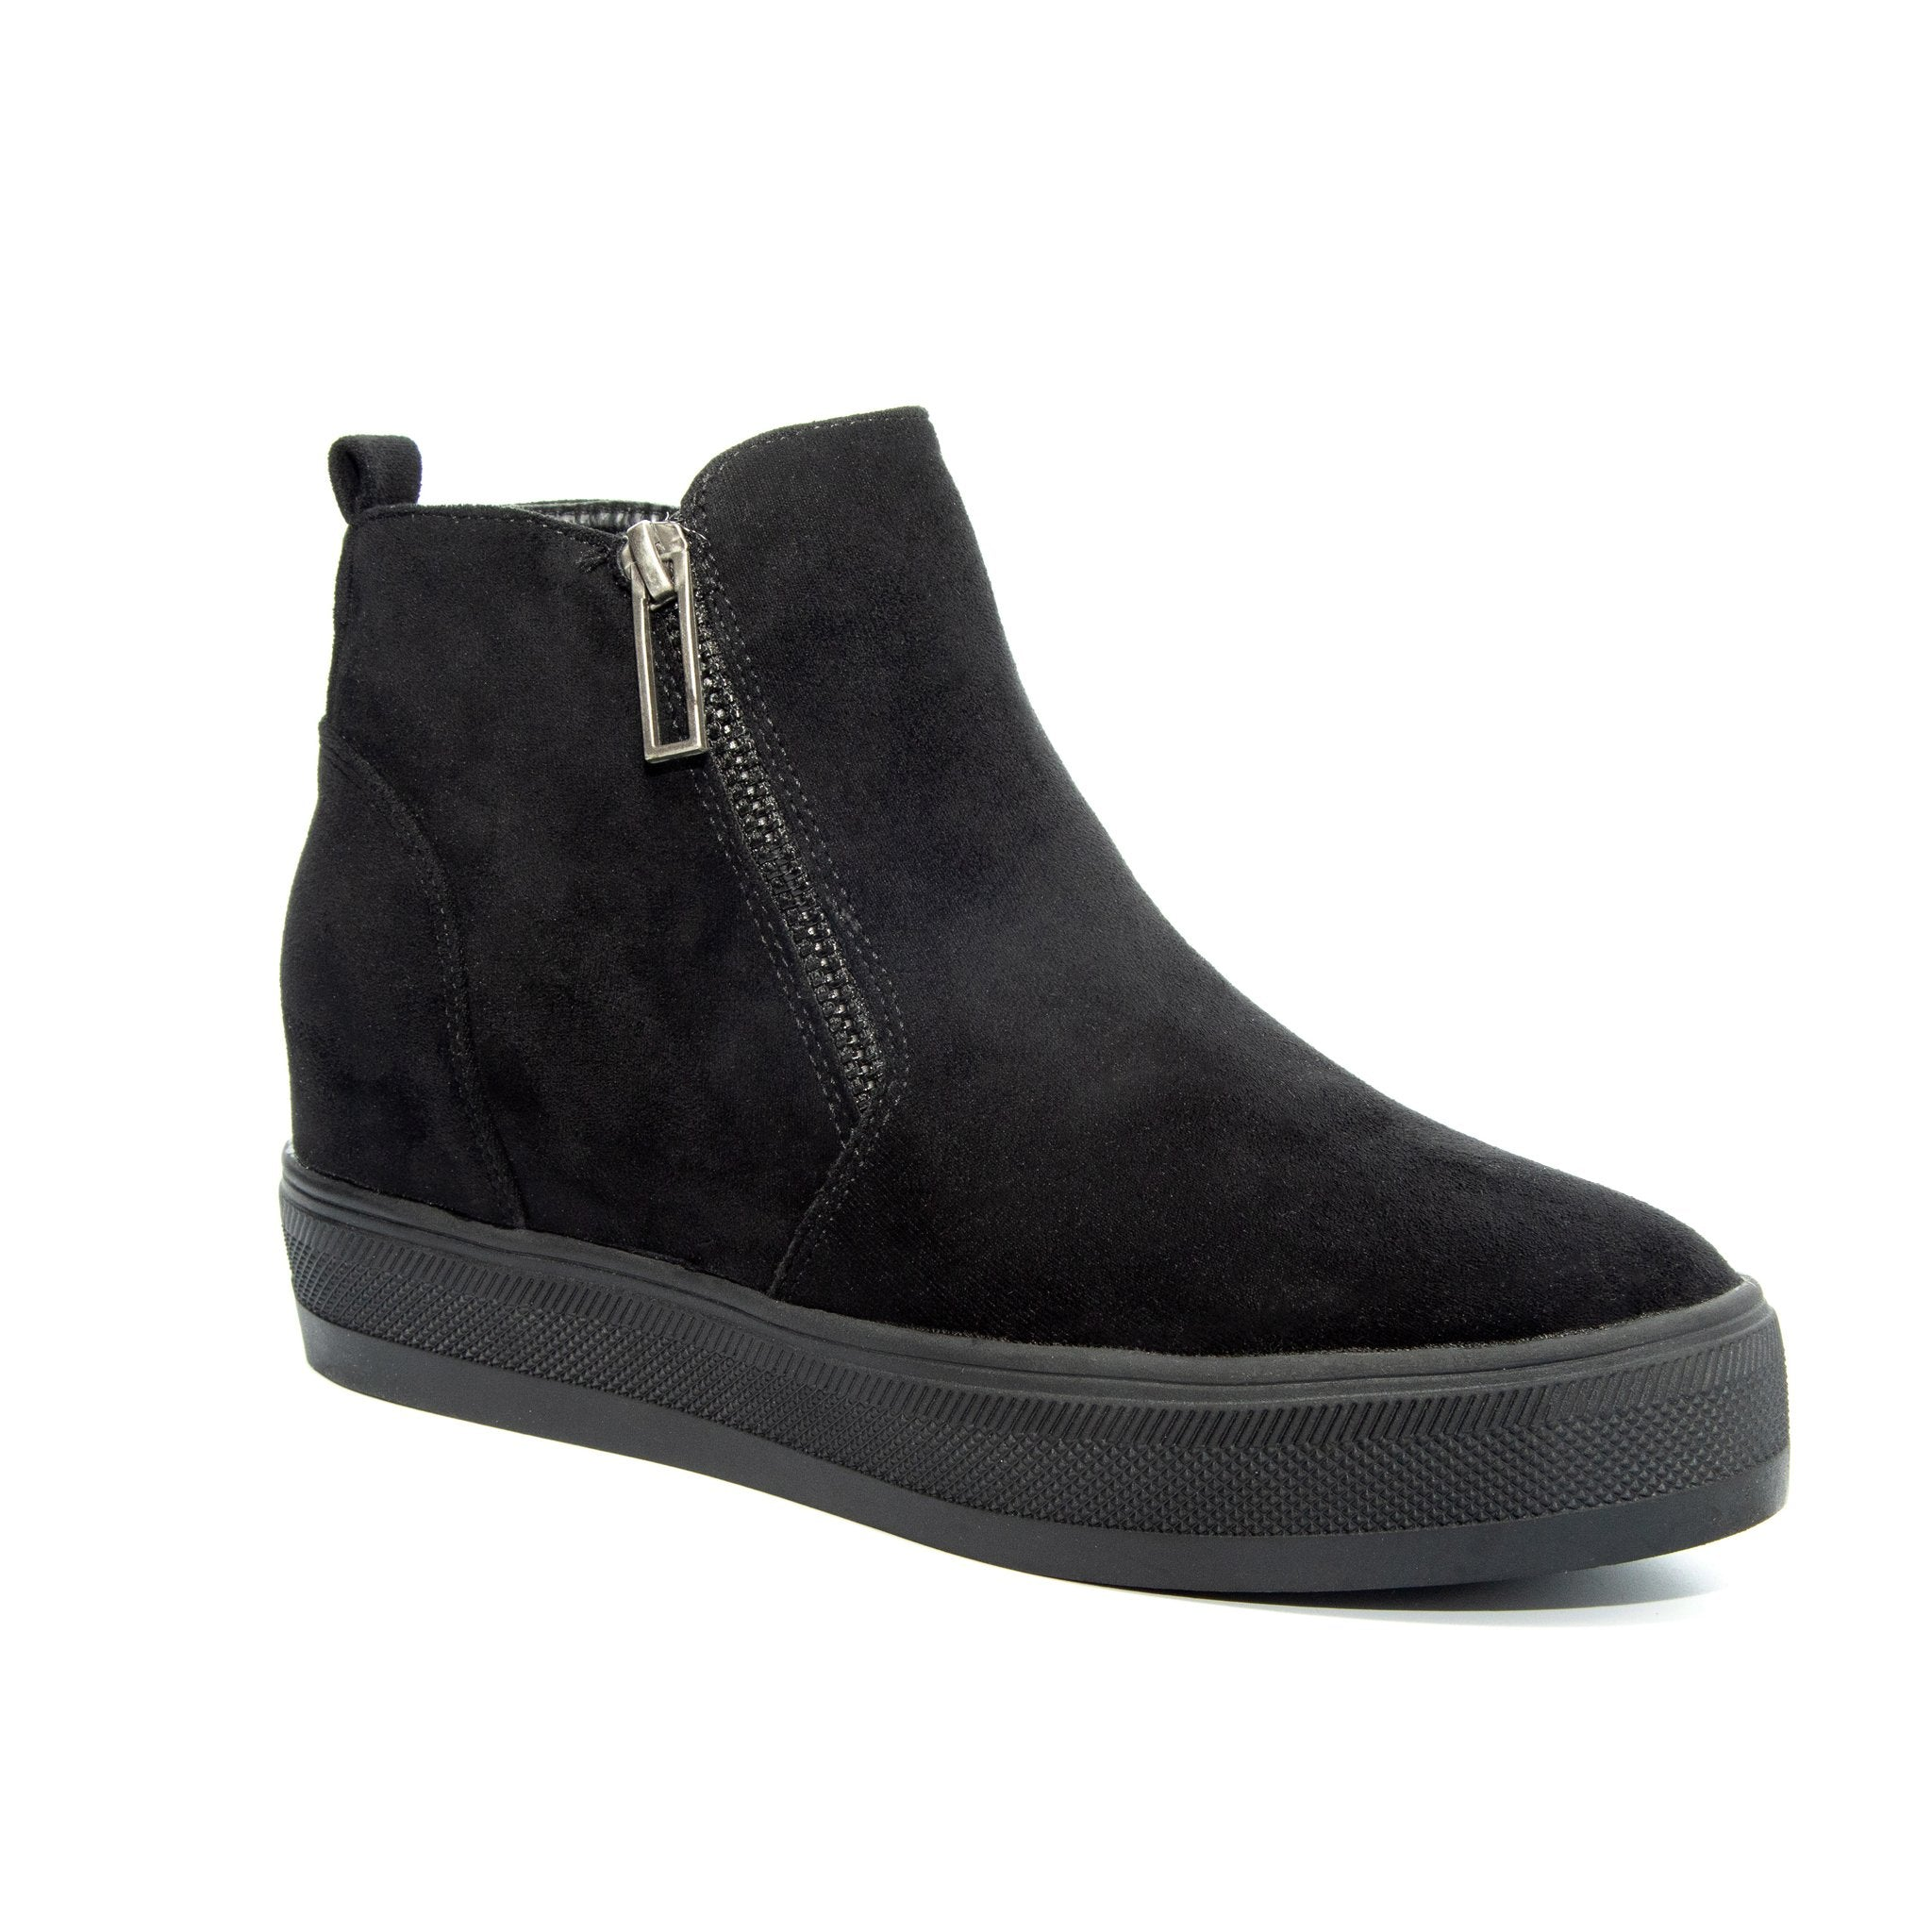 Solo by Dolce Nome | Flat Zipper Ankle Boots in Black (main view)